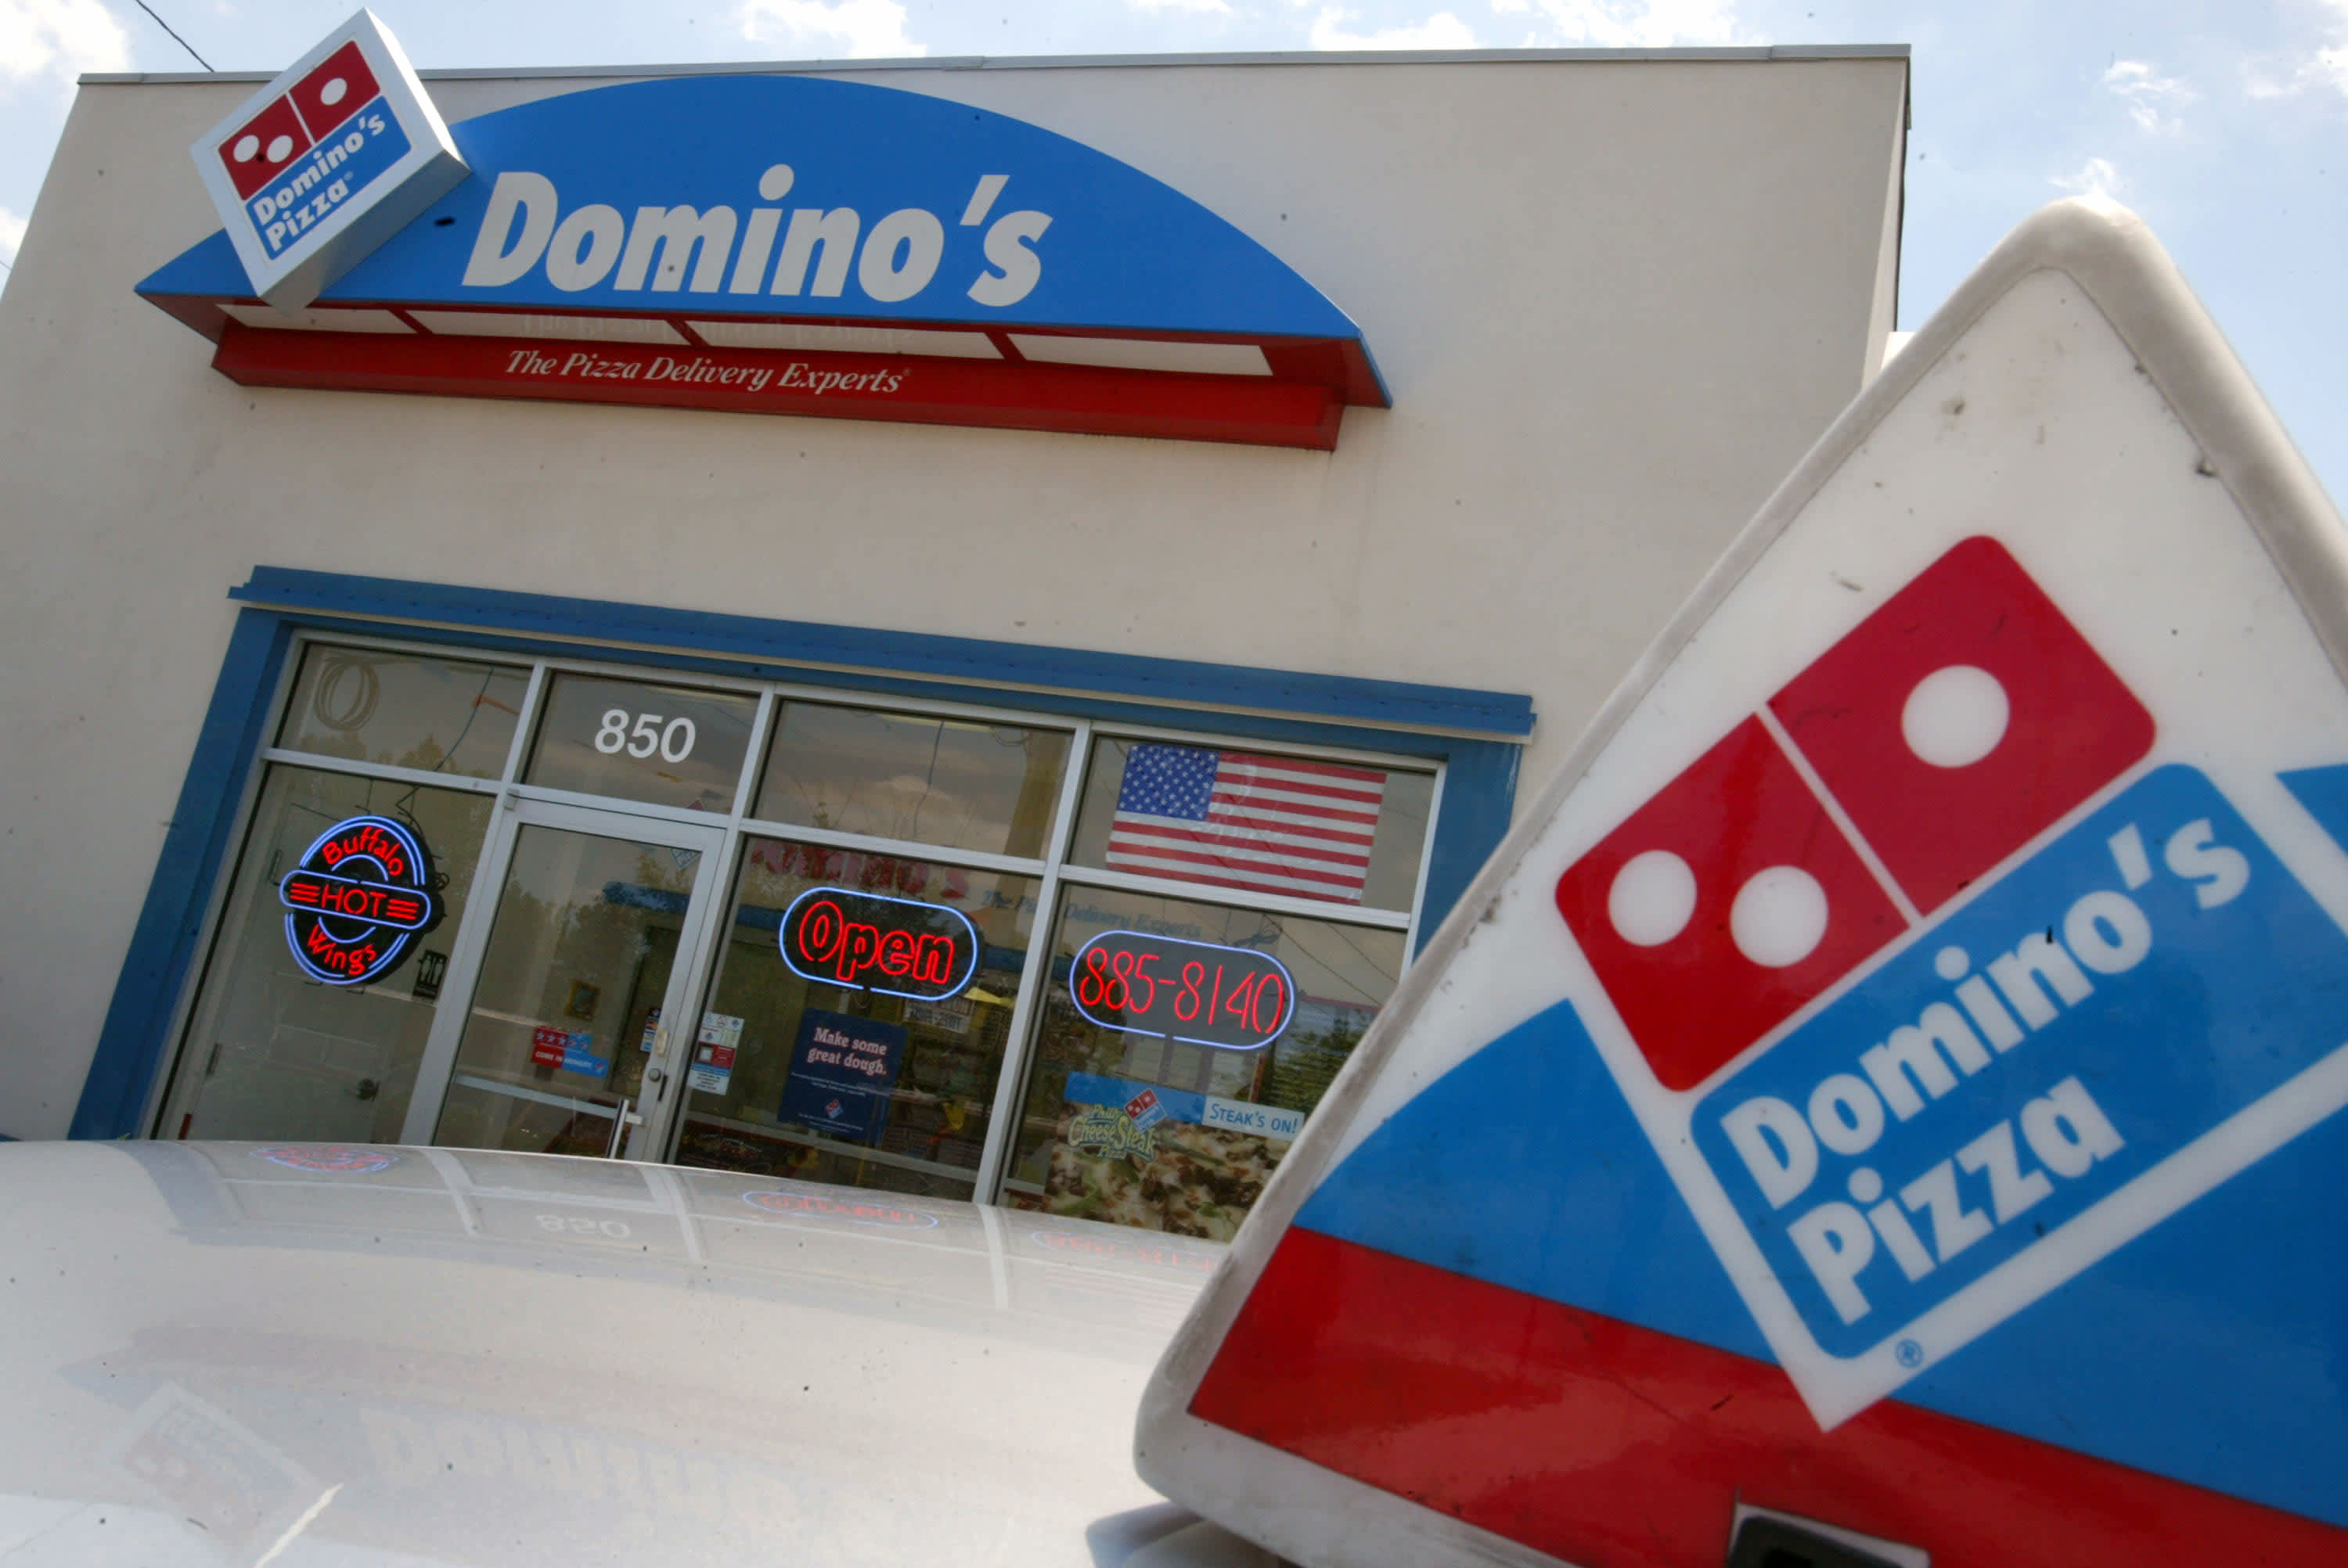 Papa John's sales are up for grabs, Domino's emerges as